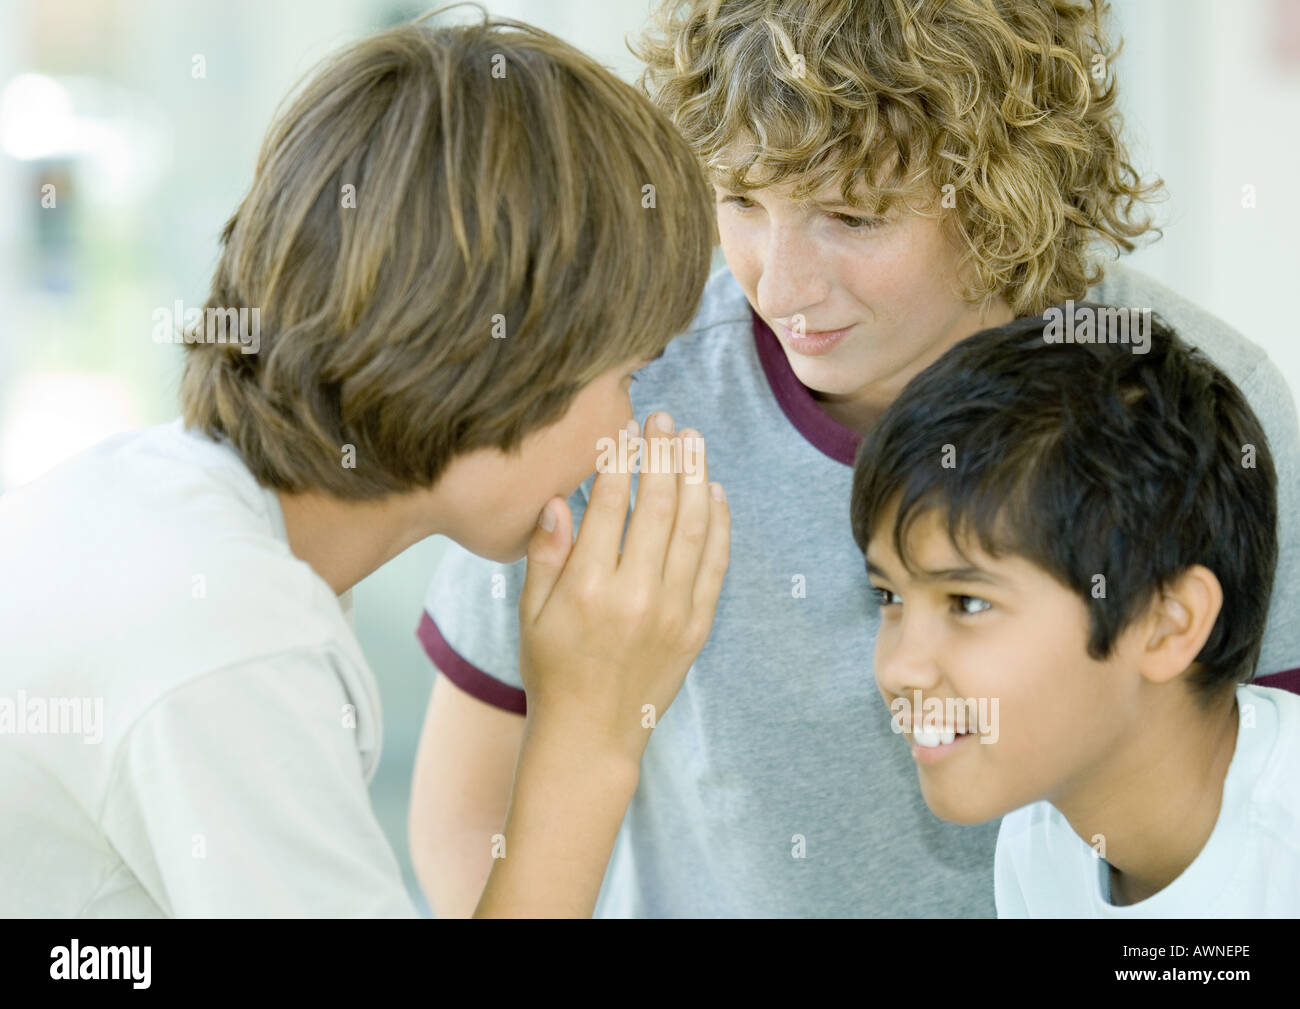 Preteen boys whispering - Stock Image